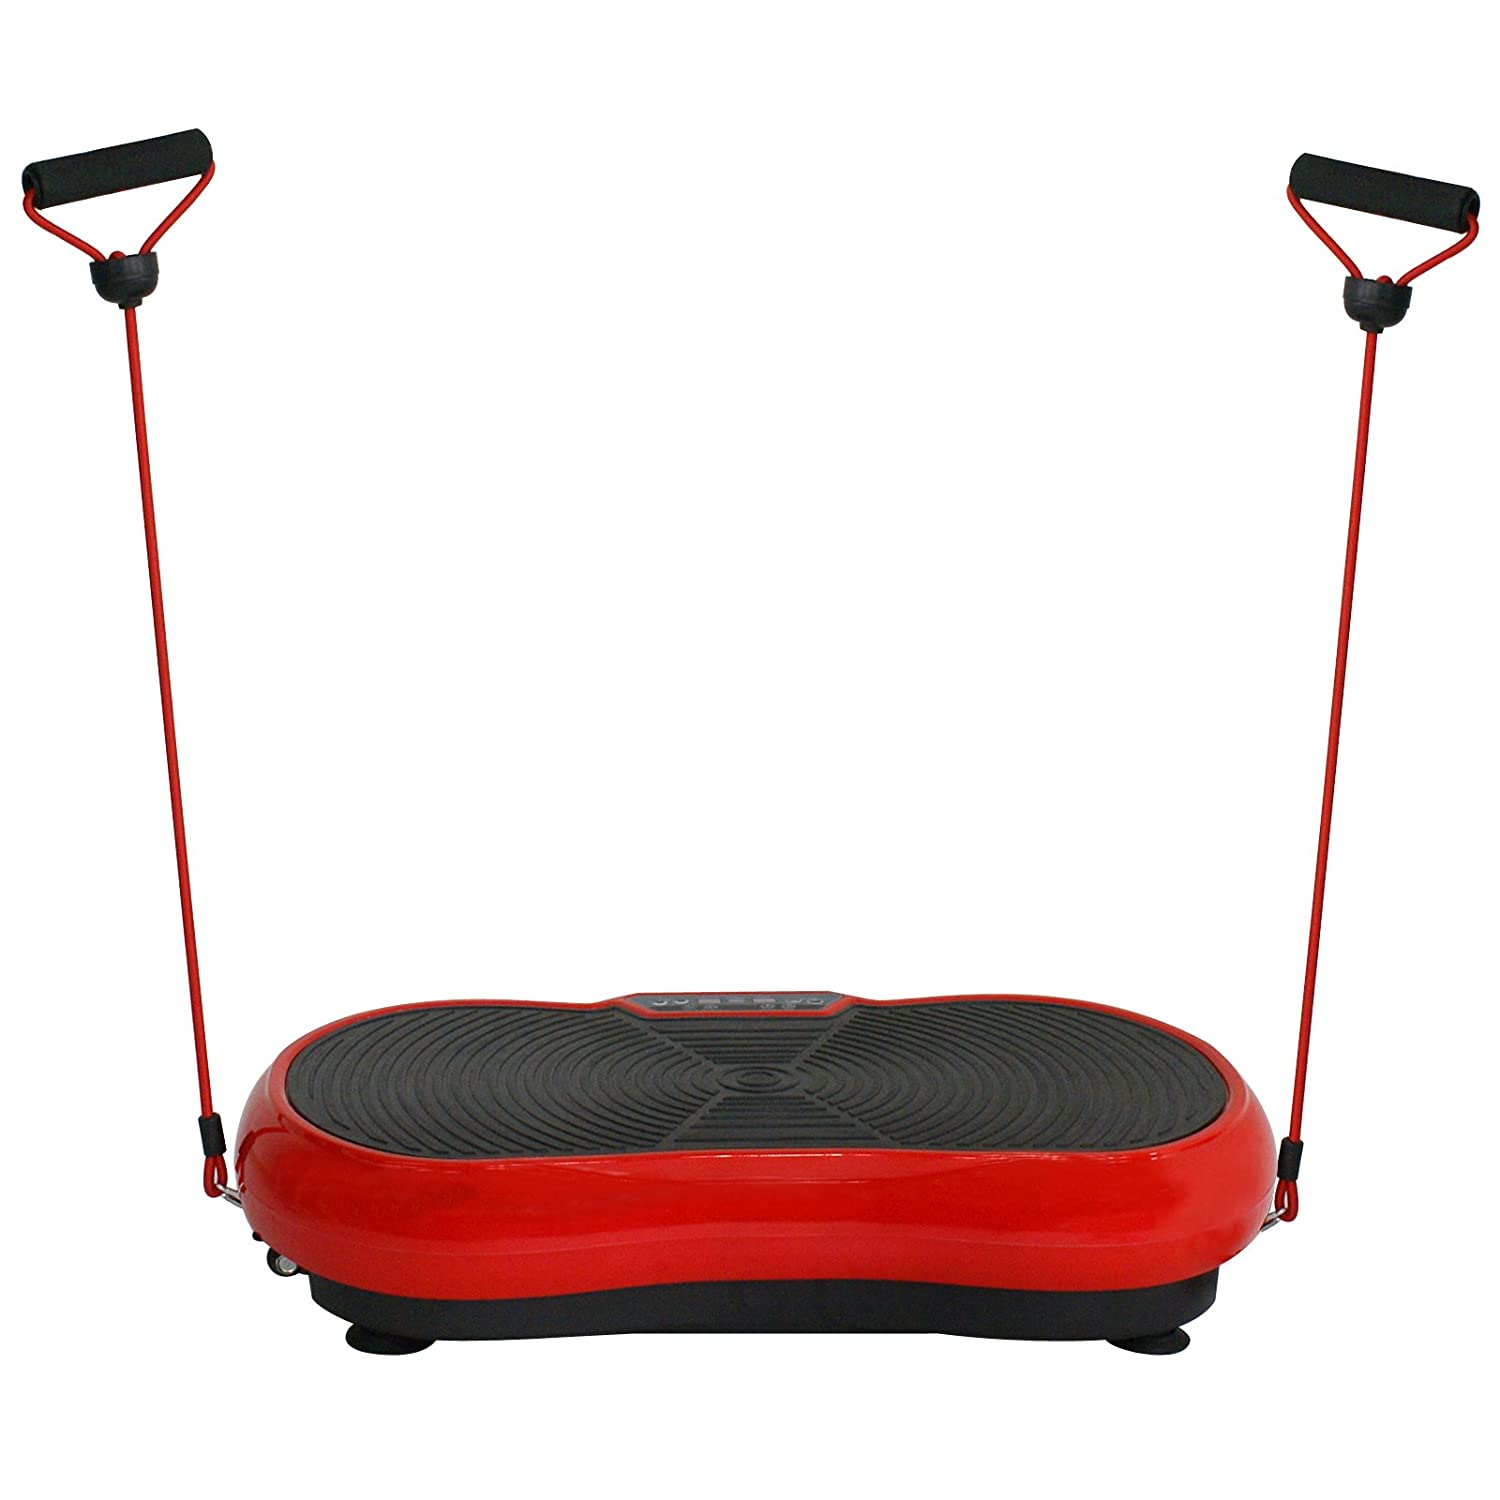 Best Vibration Plates for home use